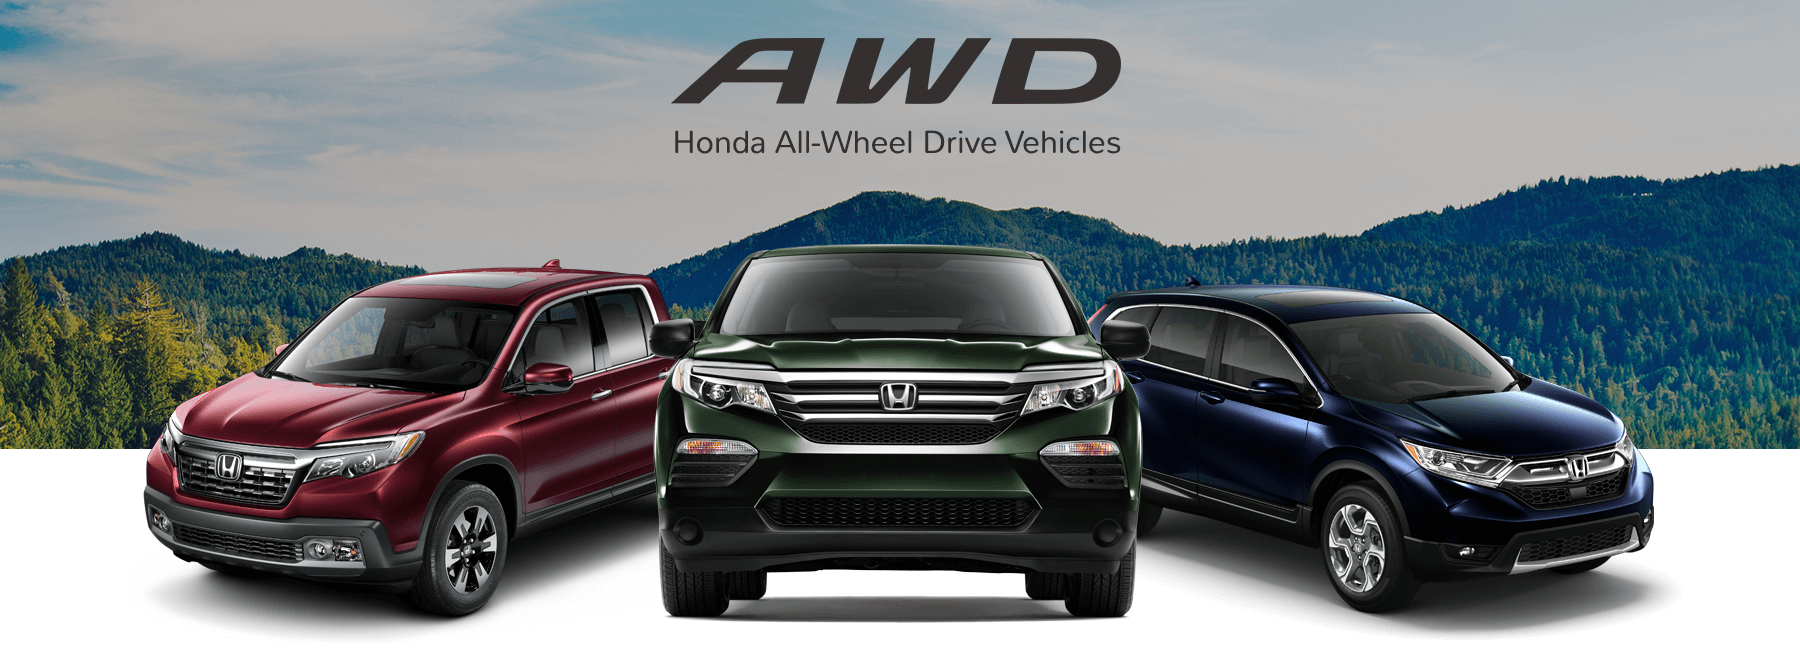 Honda All-Wheel Drive Vehicles